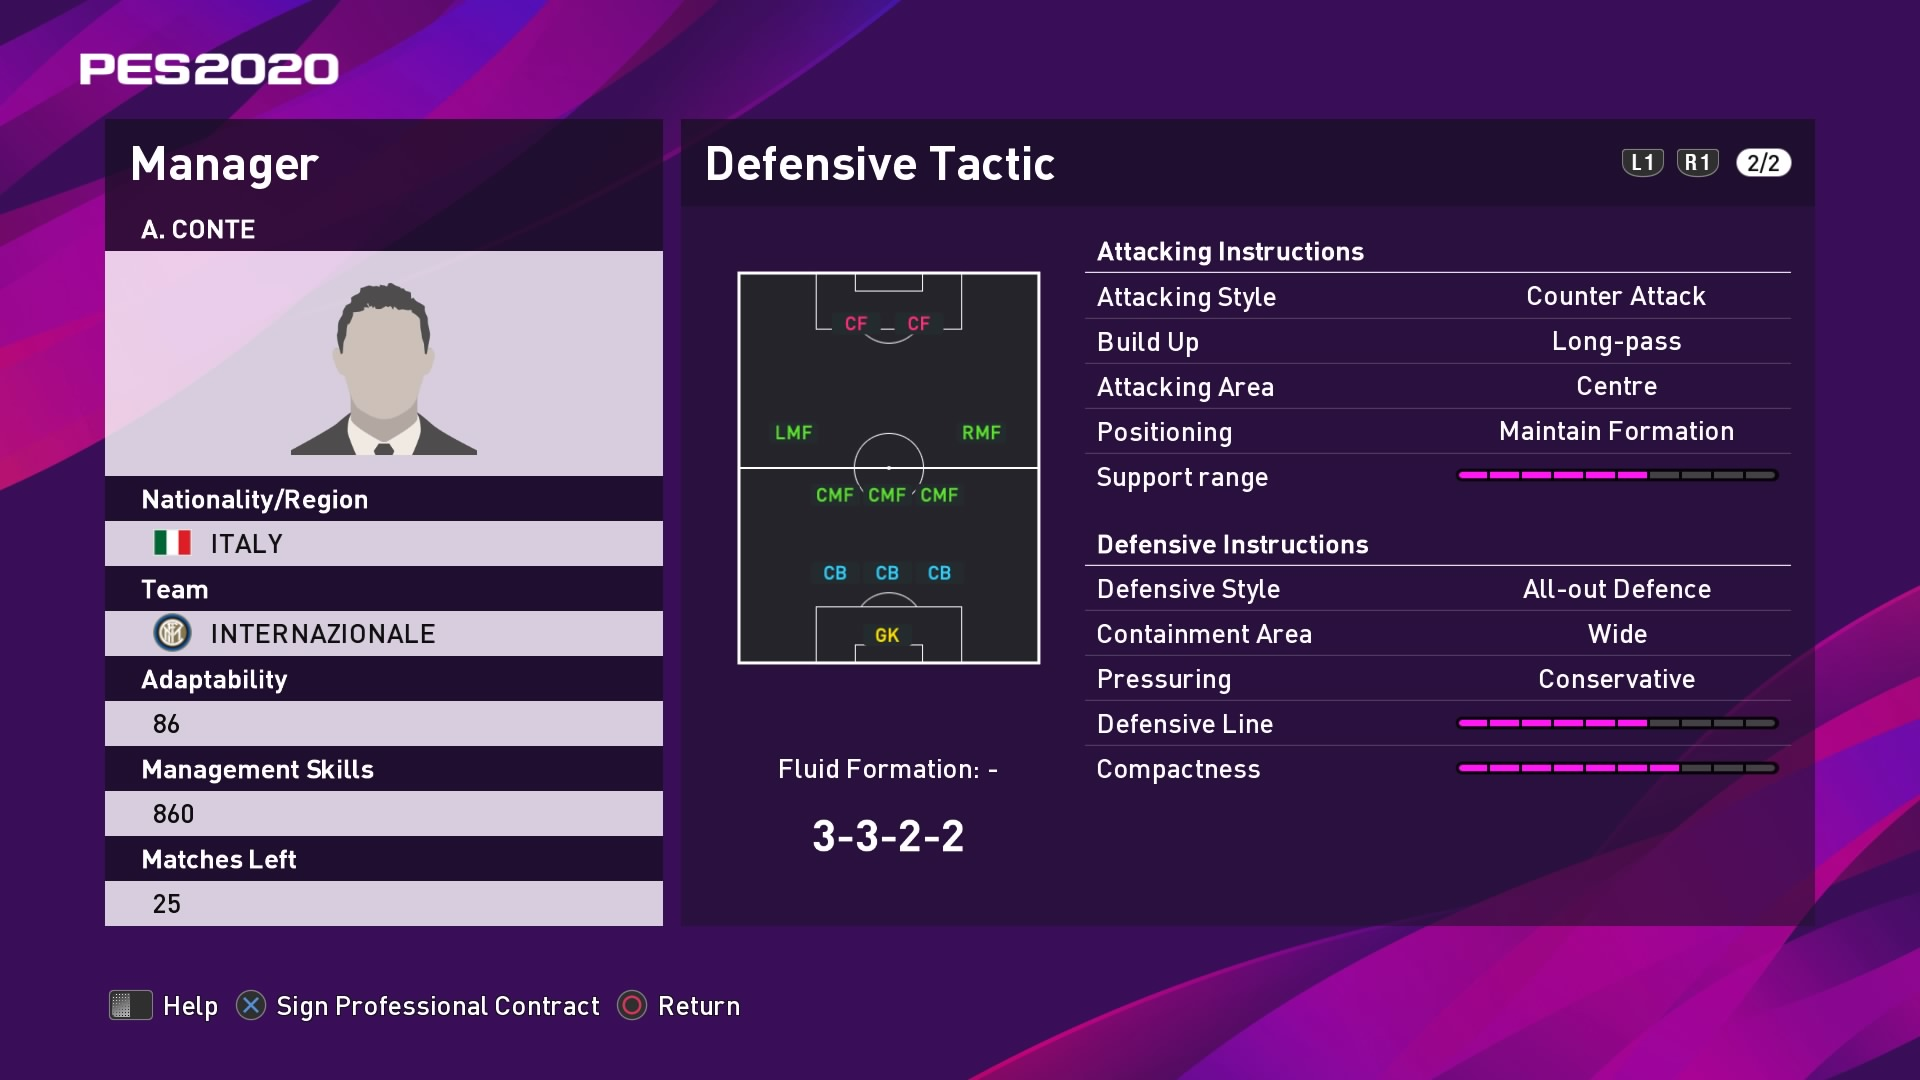 A. Conte (Antonio Conte) Defensive Tactic in PES 2020 myClub